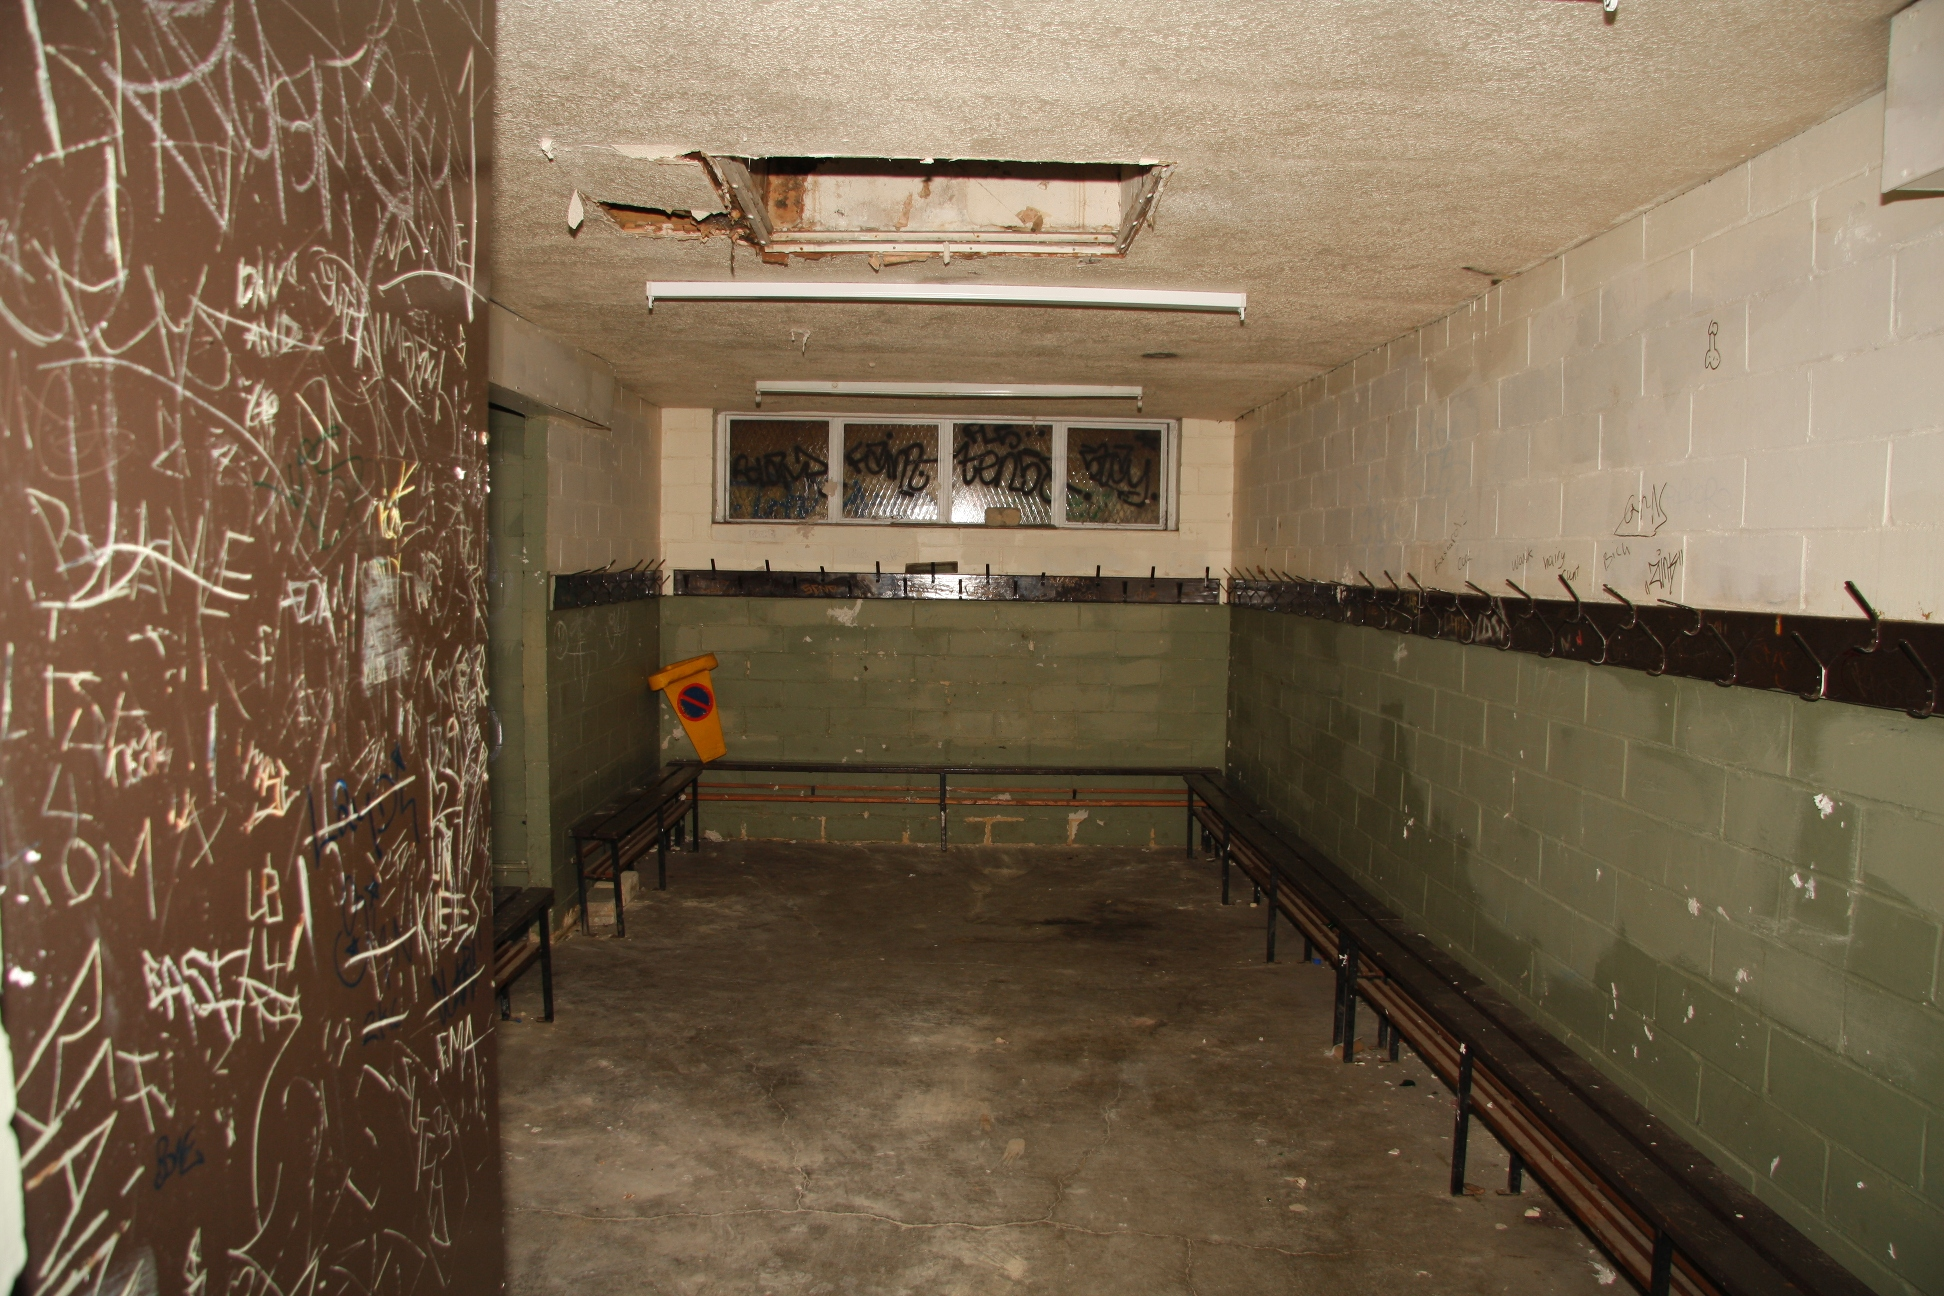 The changing rooms of North Sheen's old changing block